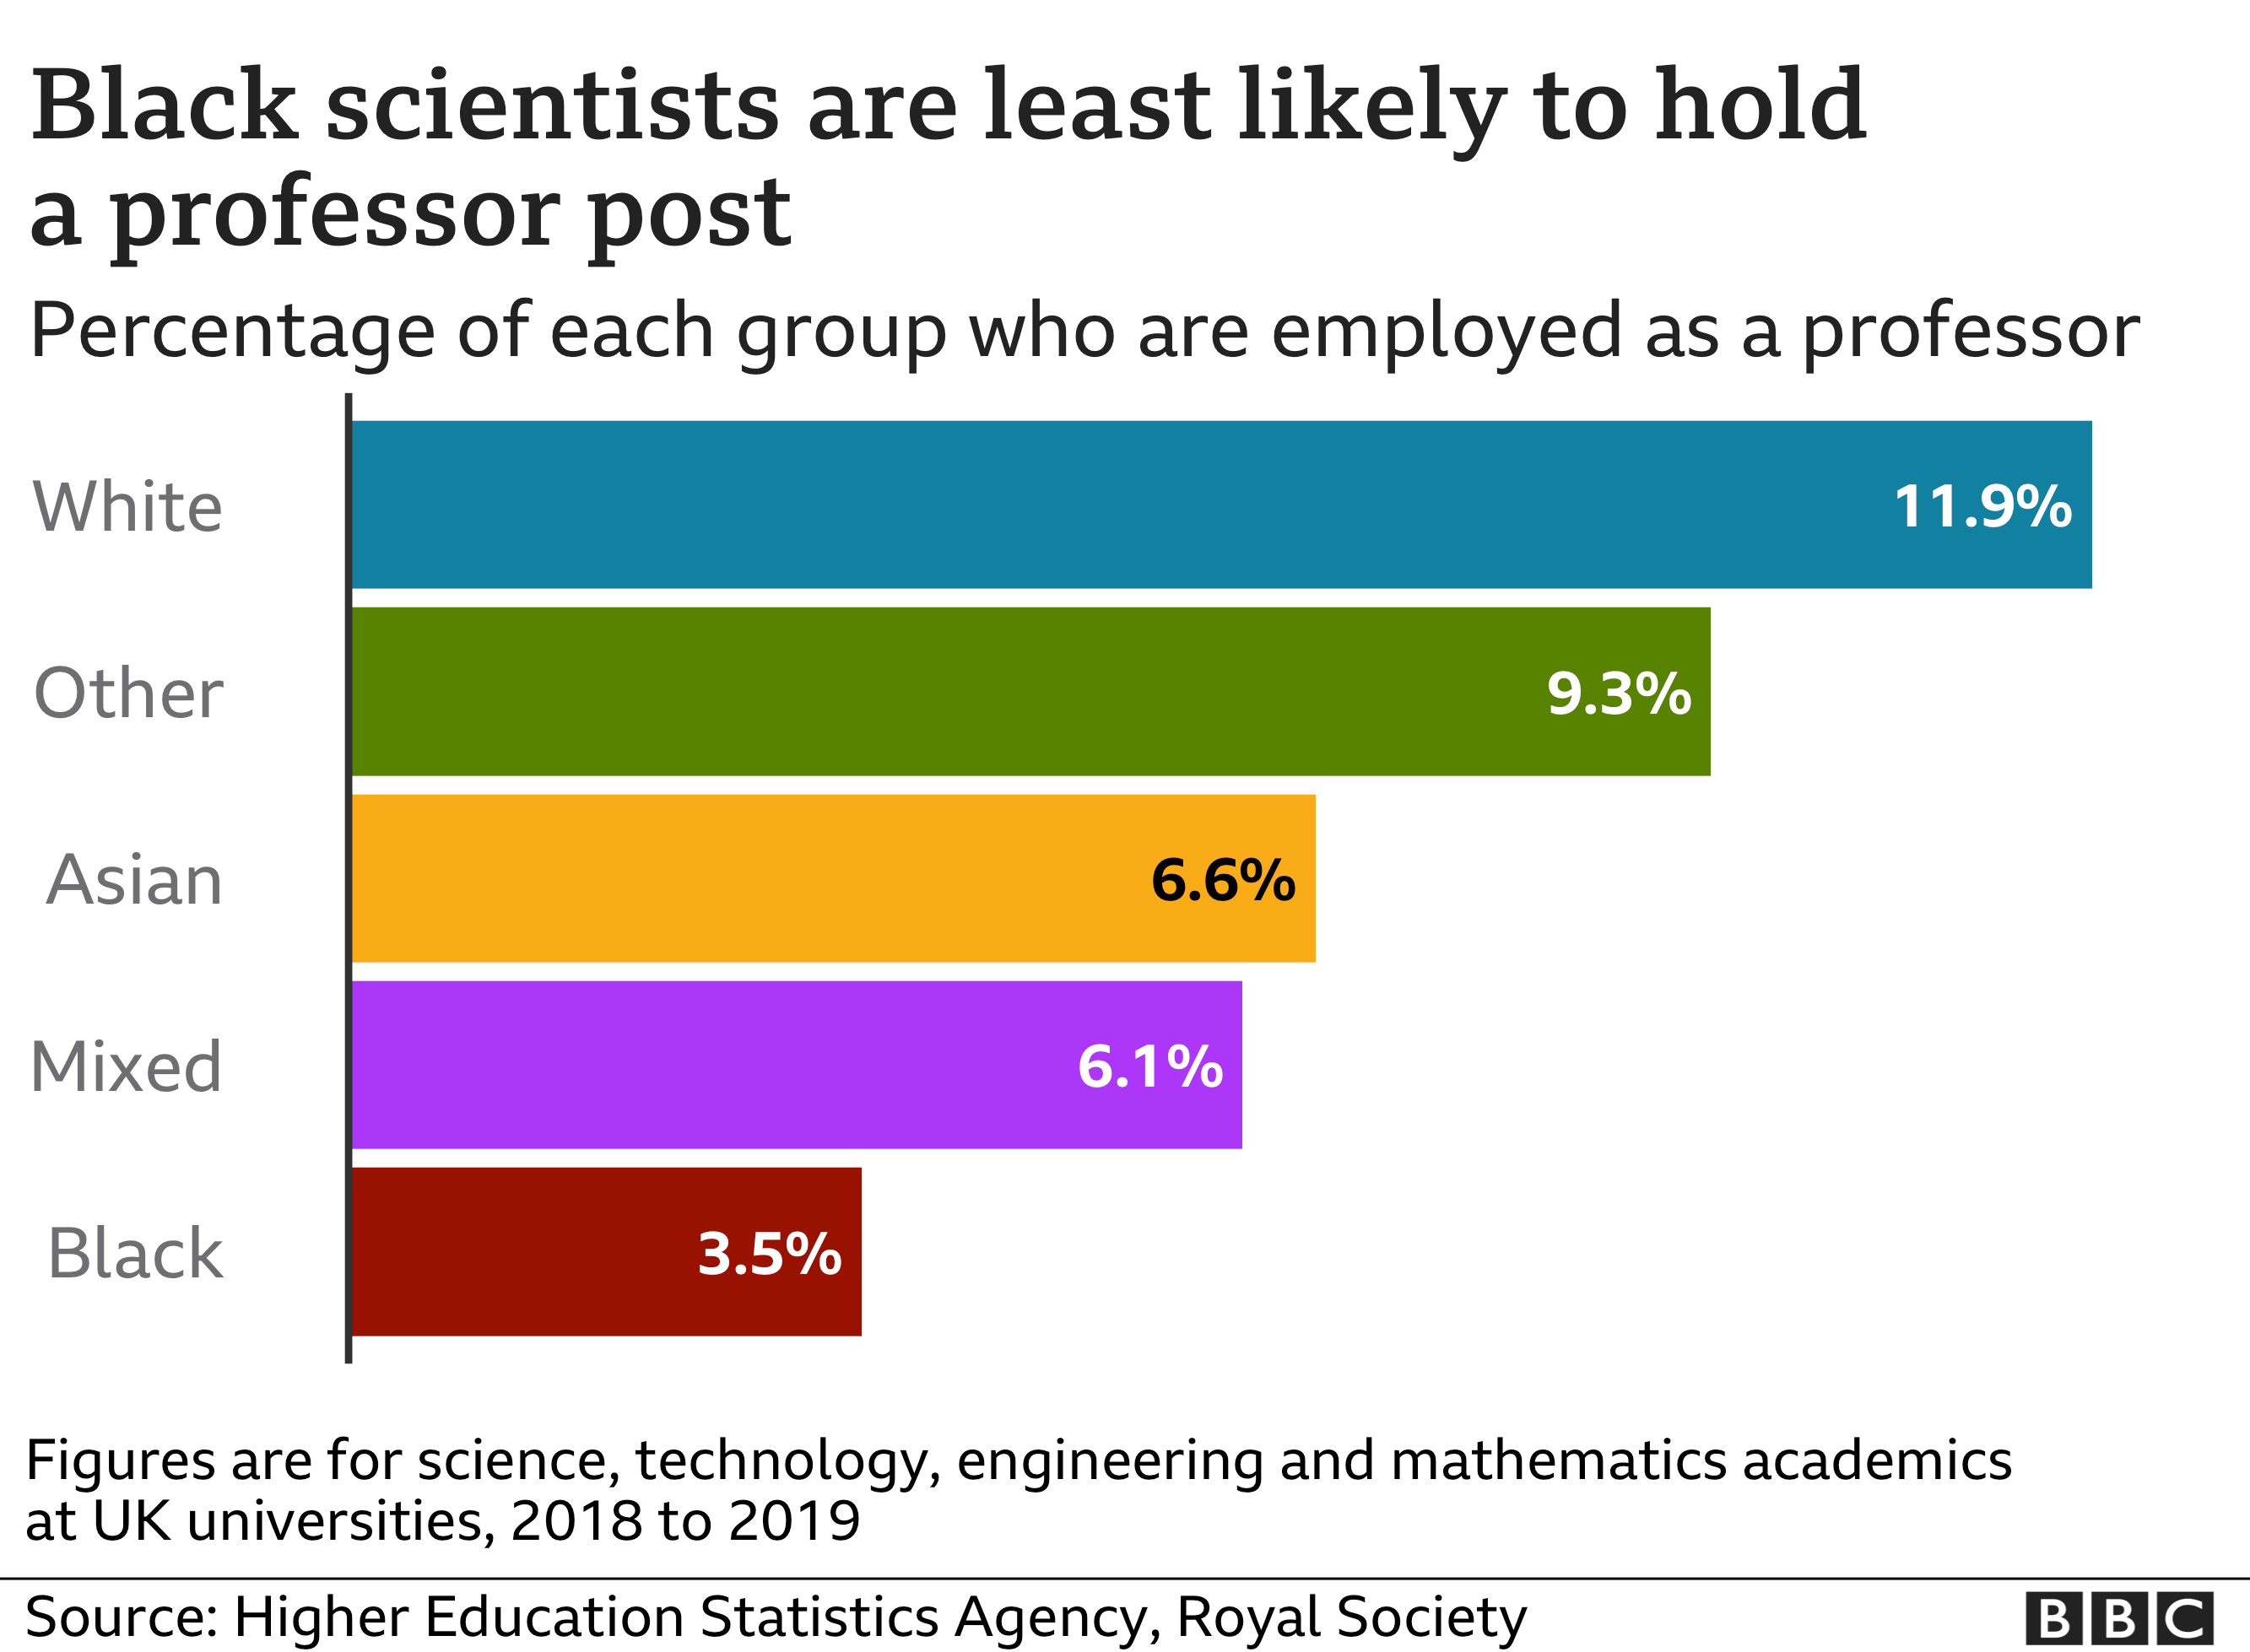 Black scientists least likley to be professors.